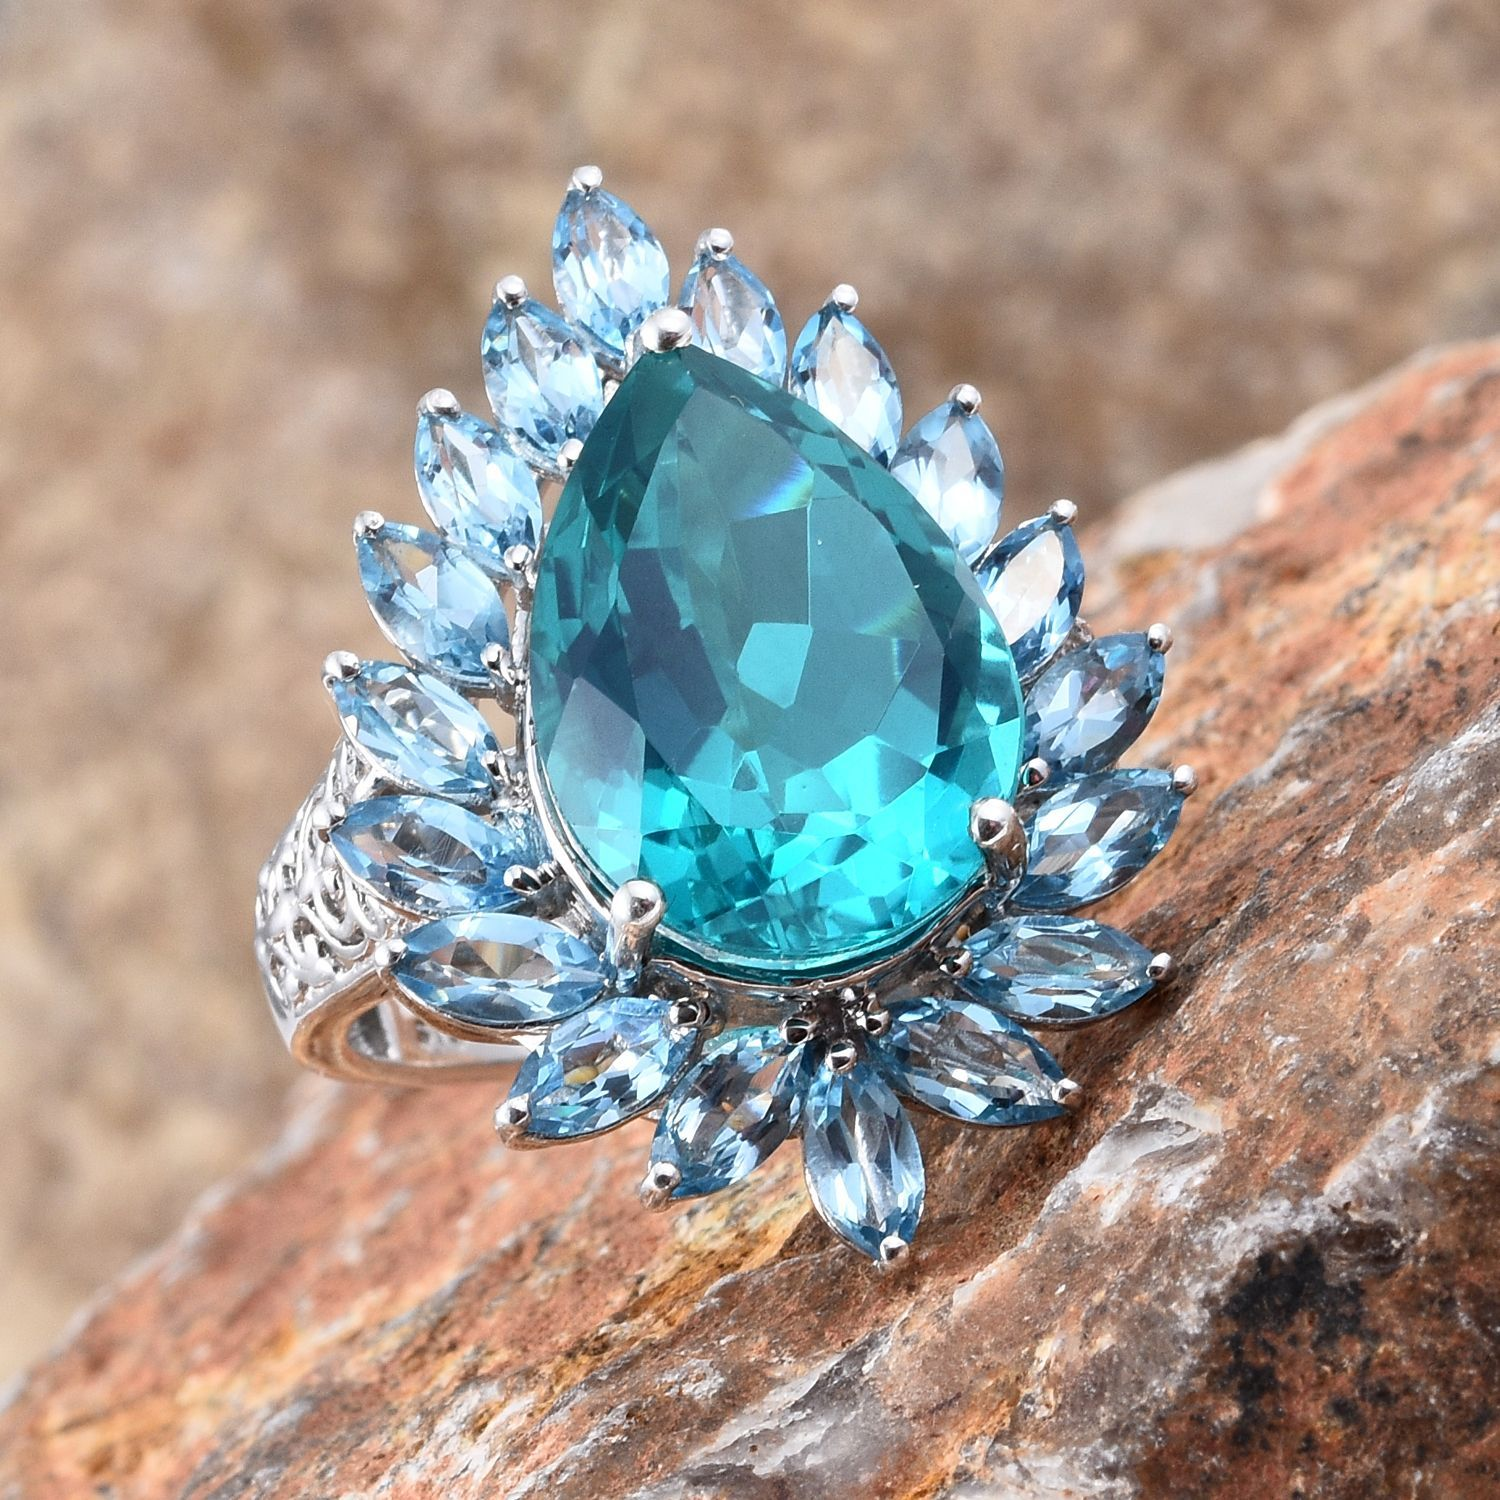 Capri Blue Quartz and Electric Blue Topaz Ring in Platinum Over Sterling Silver